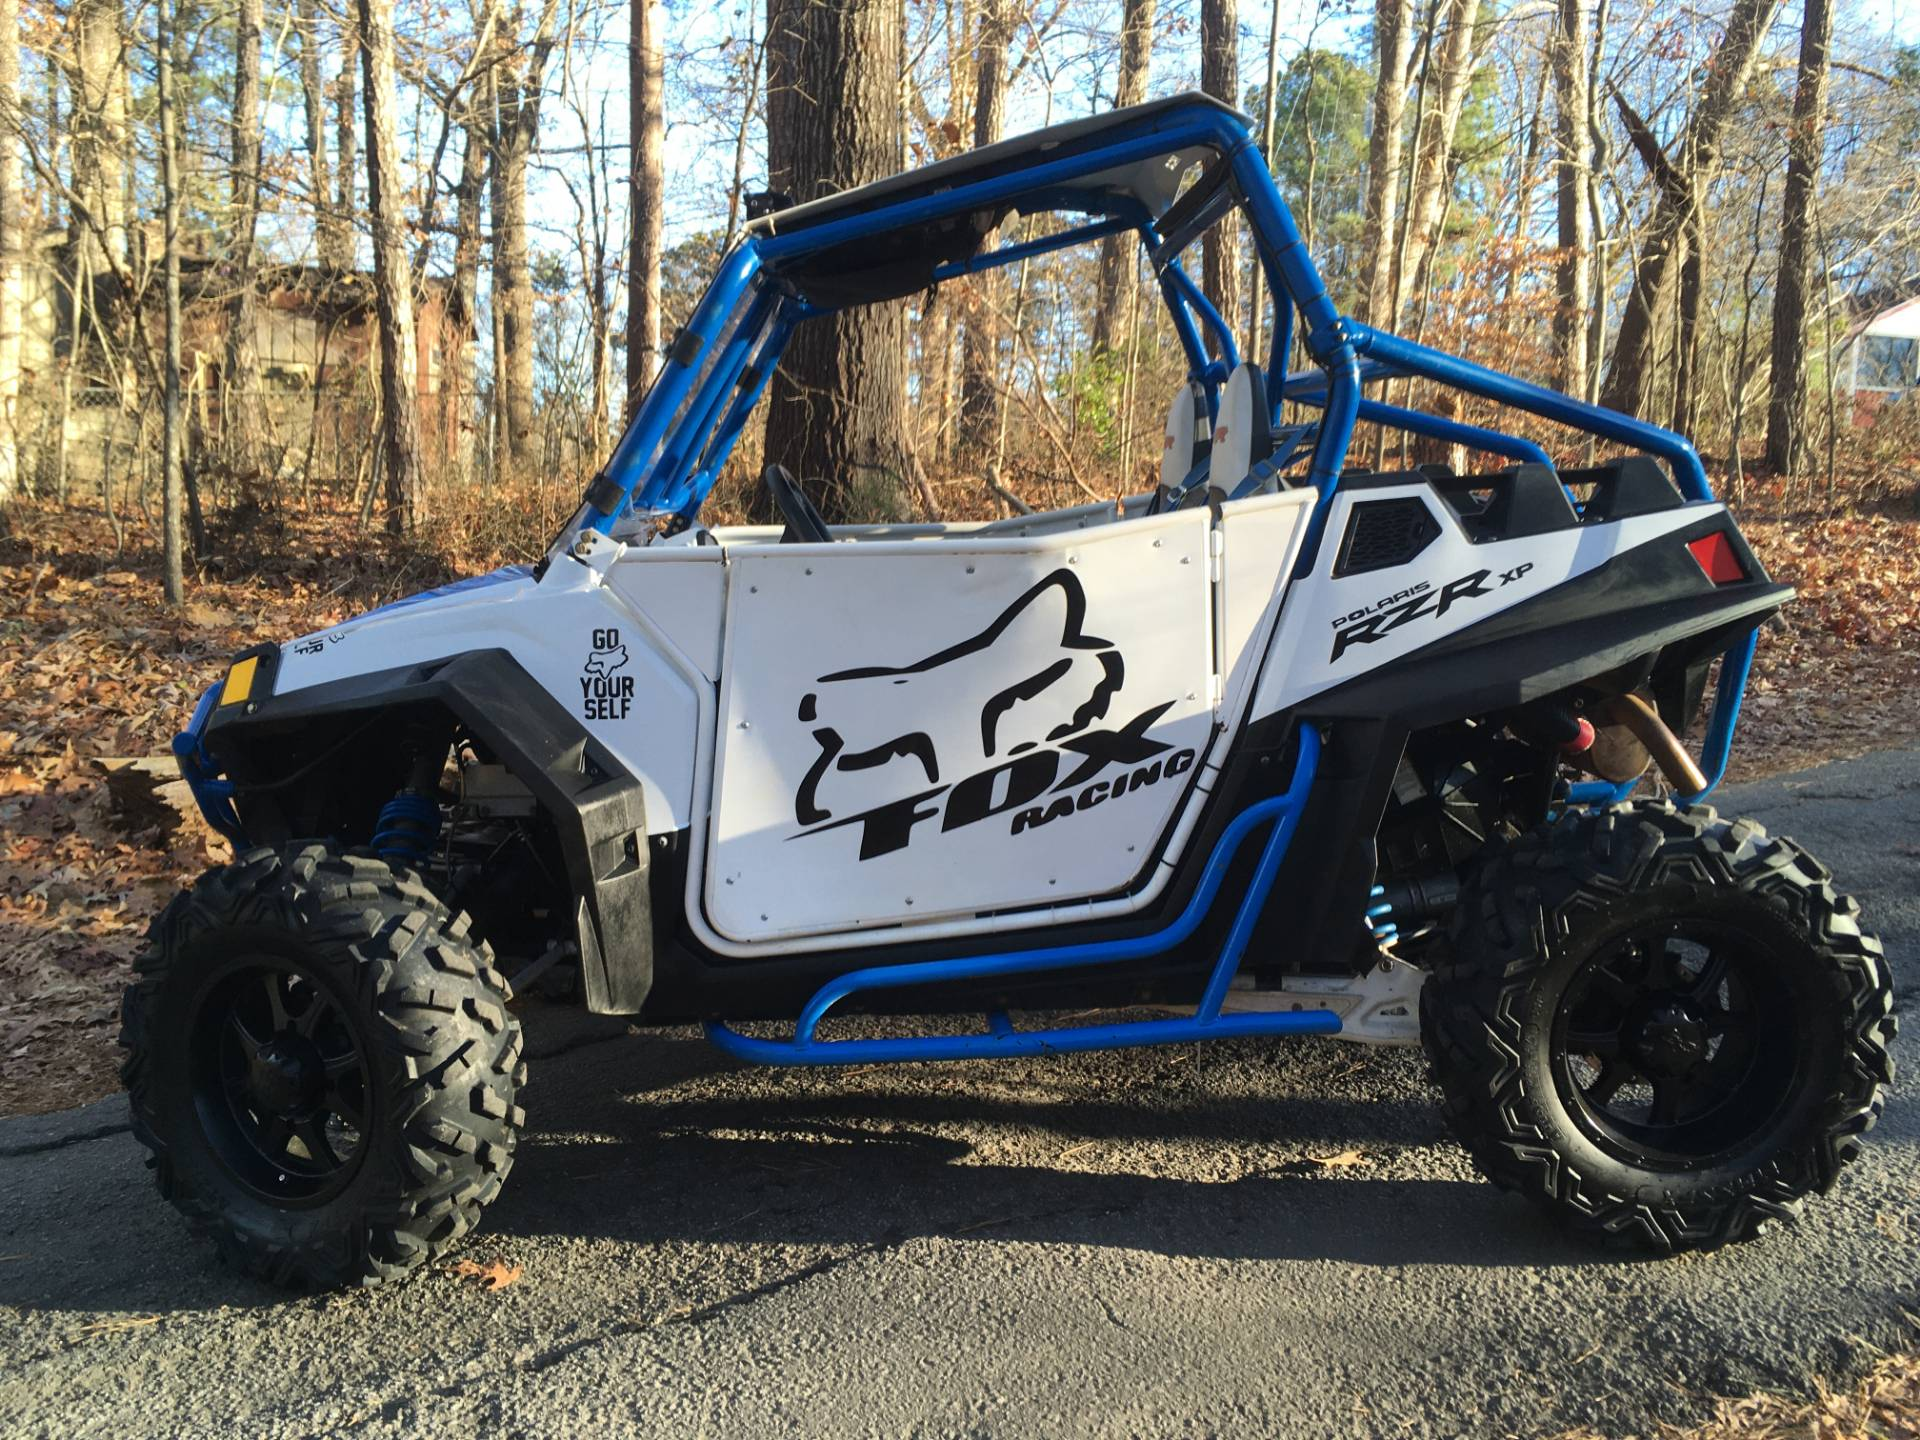 2012 POLARIS RZR 900 XP in Woodstock, Georgia - Photo 2